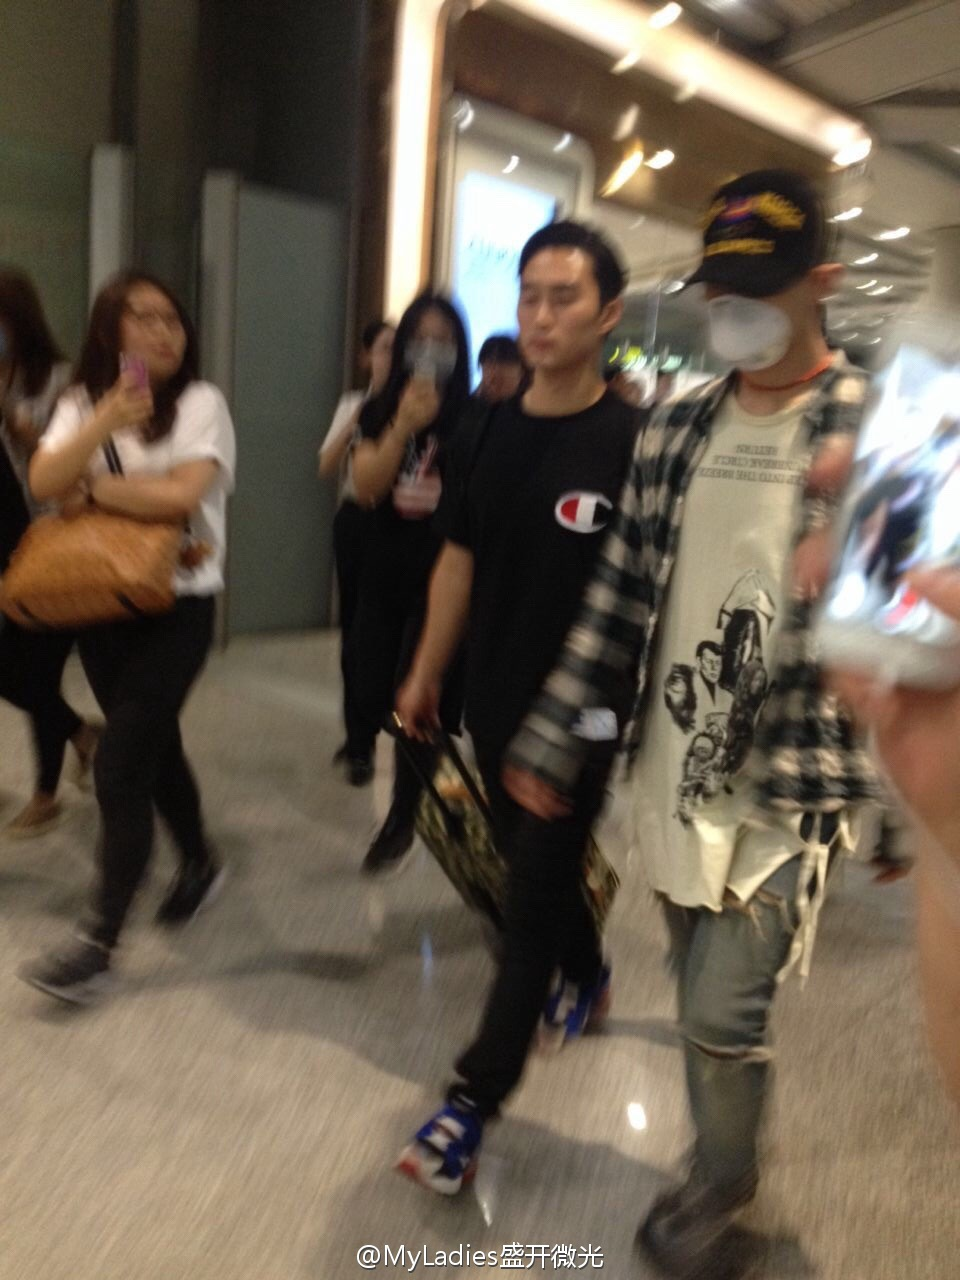 Big Bang - Beijing Airport - 05jun2015 - G-Dragon - MyLadies???? - 01.jpg